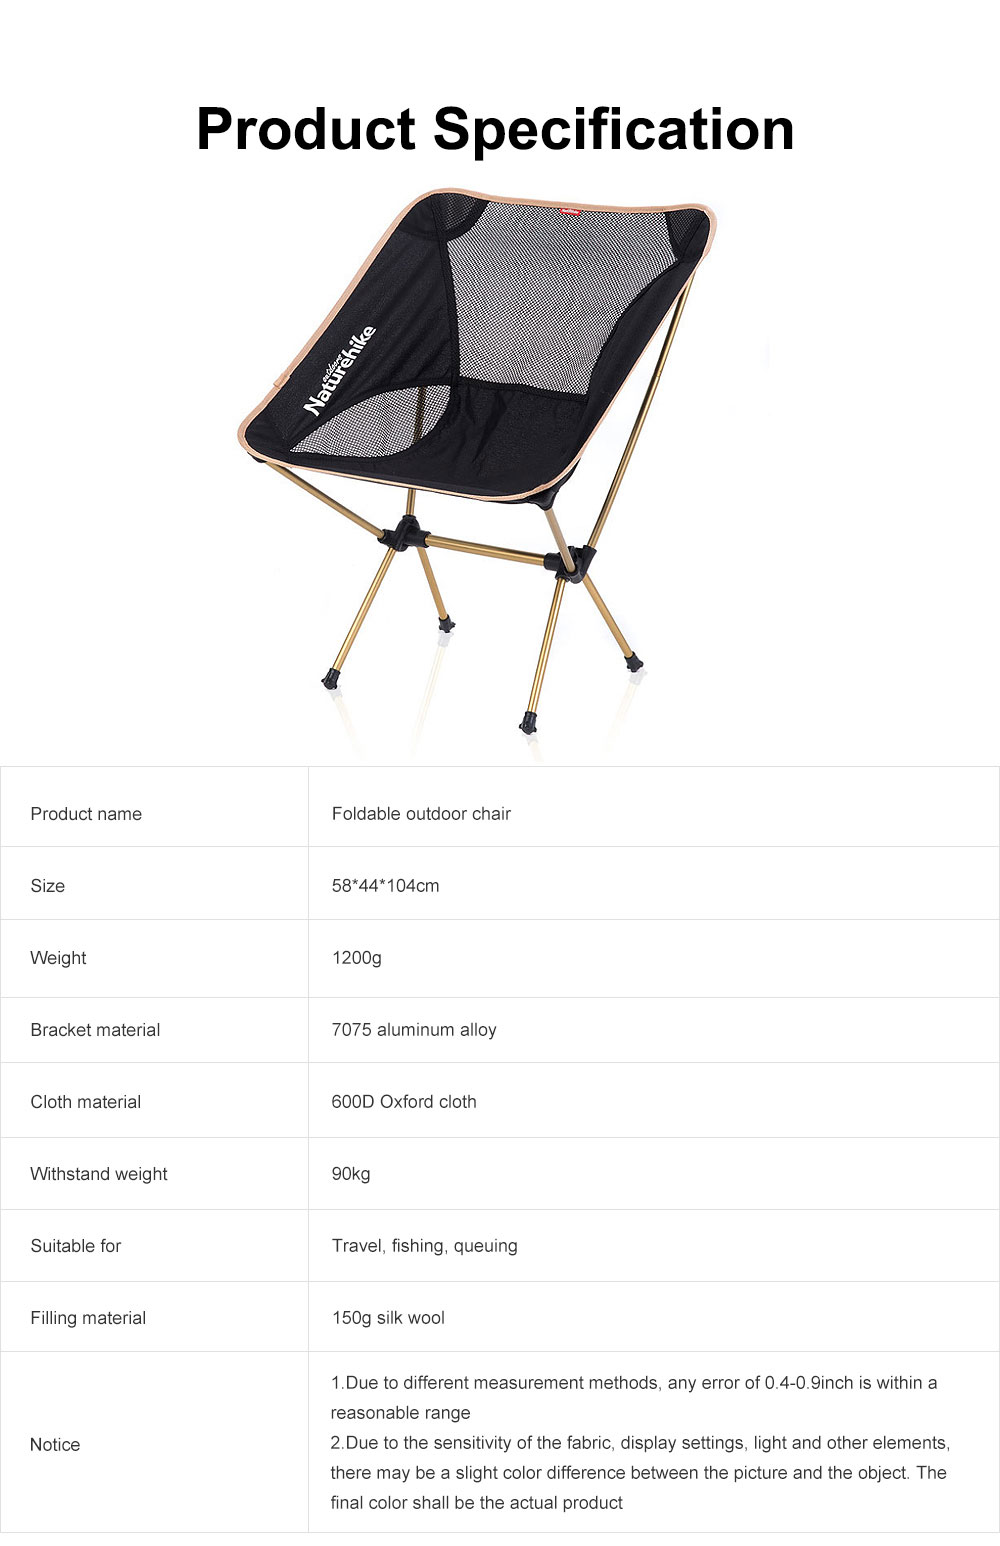 Foldable Outdoor Chair, Durable Oxford Fabric Stools with Aluminum Frame for Camping Fishing Cycling Traveling 7